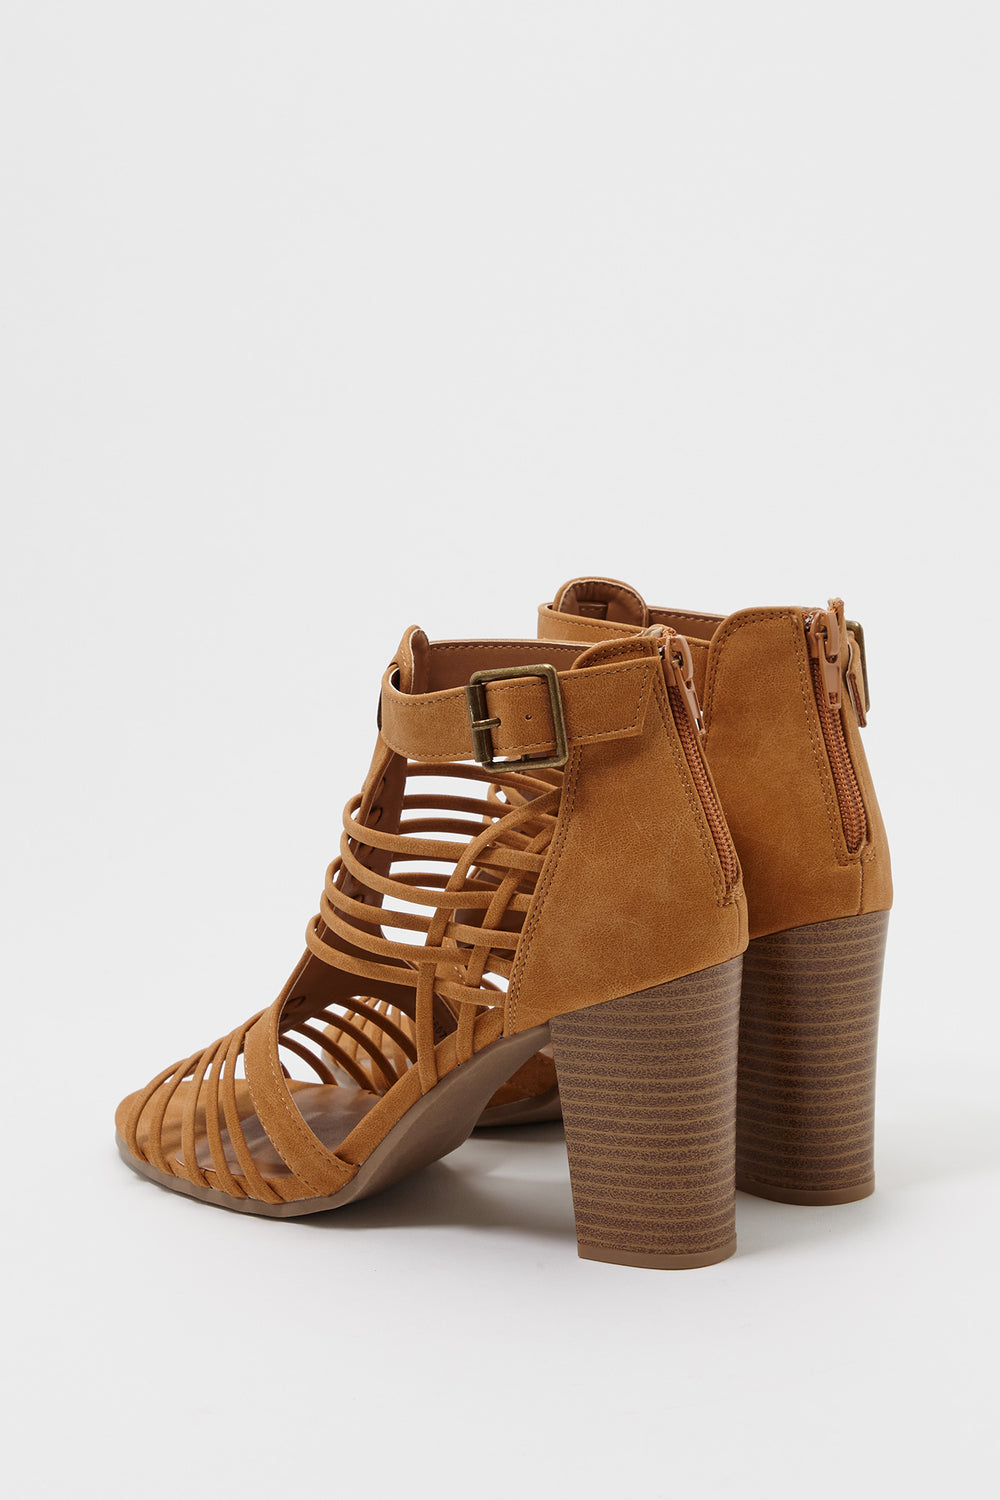 Caged Strappy Block Heel Sandal Camel